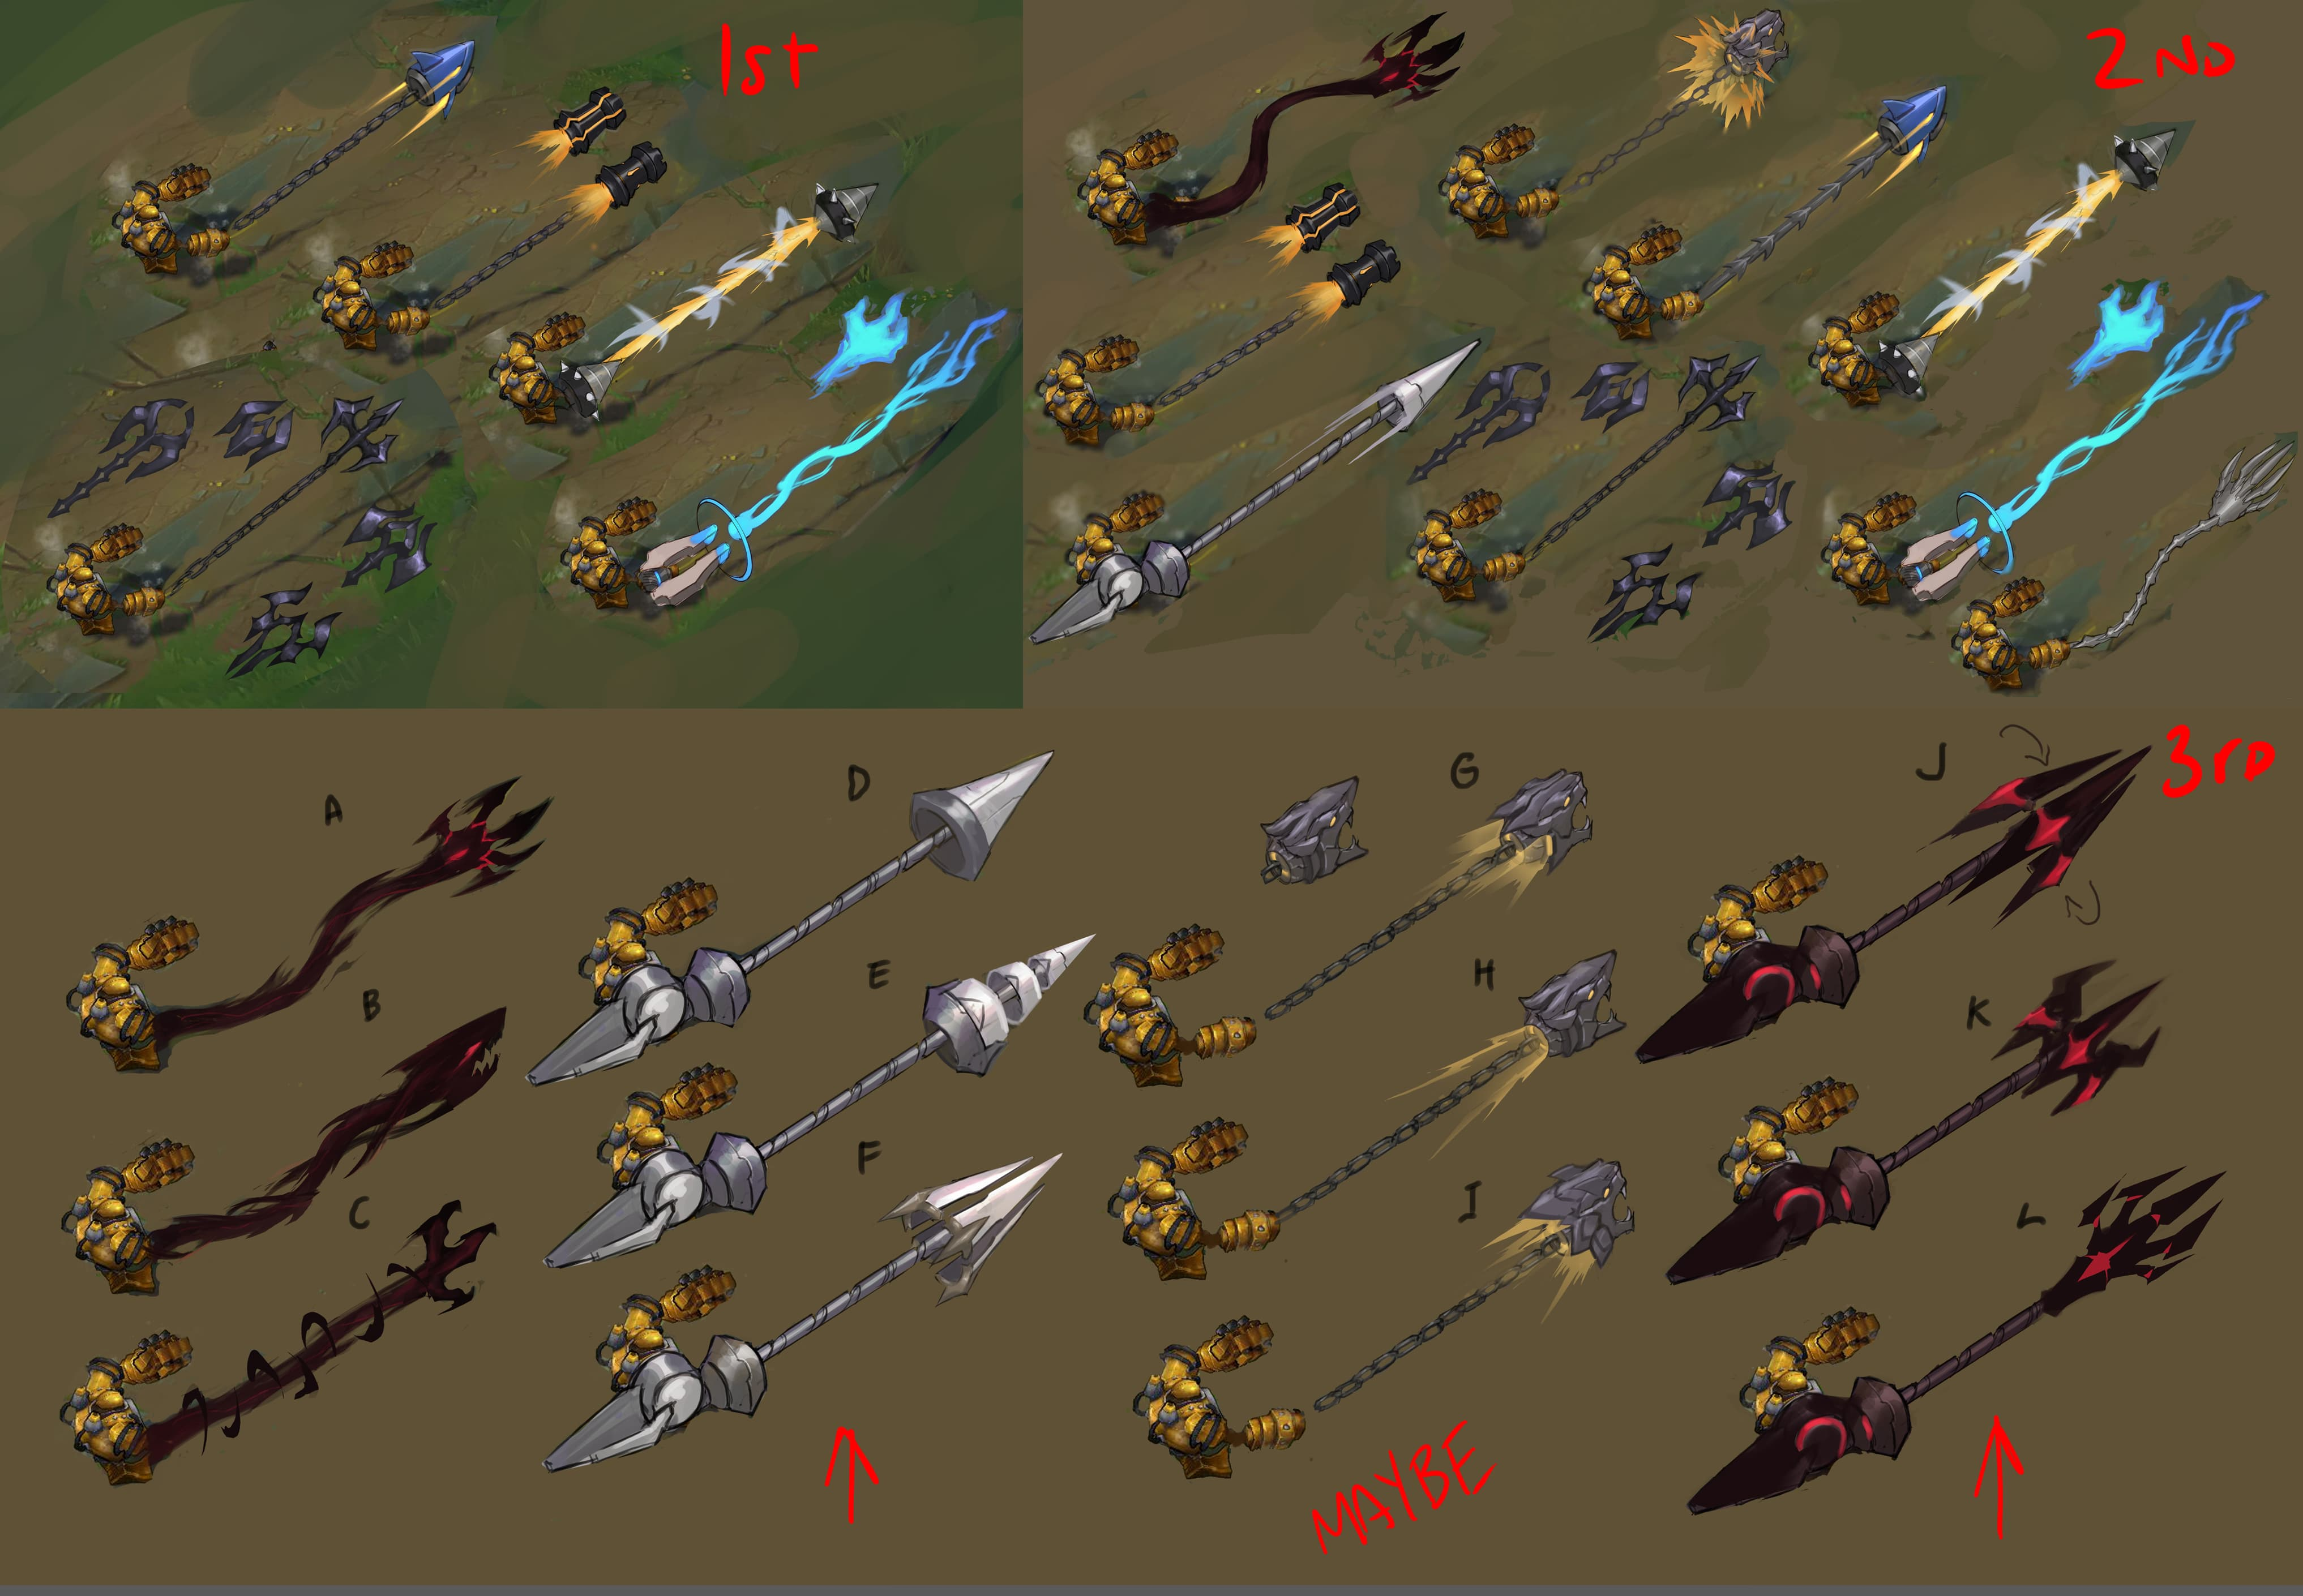 Exploring Possible Hooks (bottom-right design eventually became Lancer Rogue Blitzcrank)